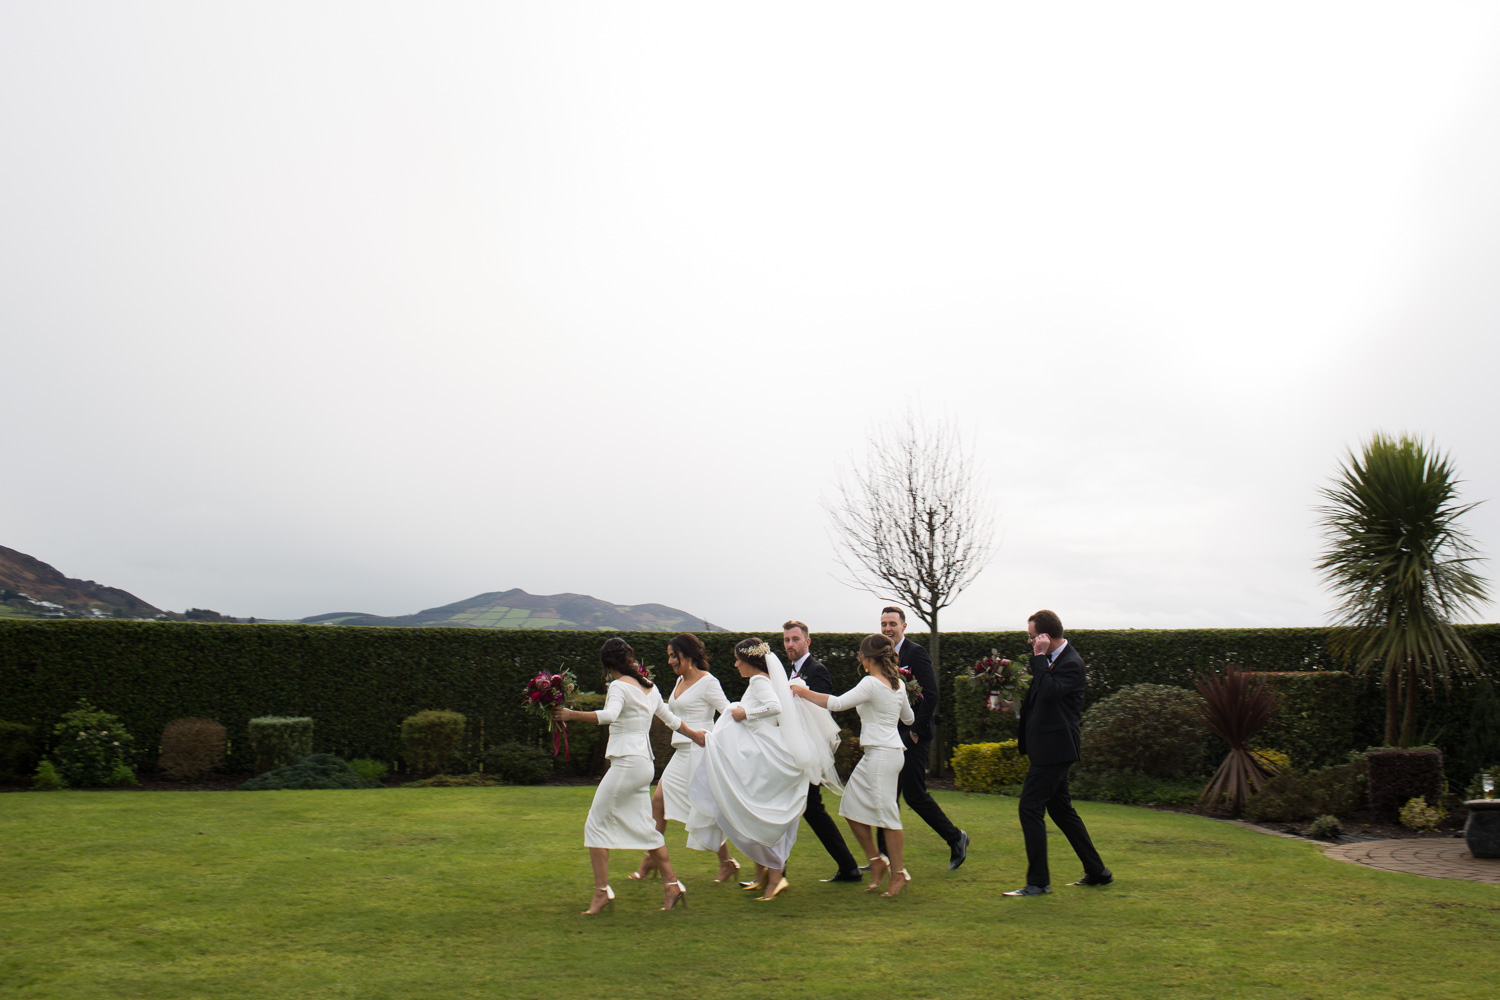 Mark_Barnes_Northern_Ireland_wedding_photographer_Innishowen_Gateway_Donegal_Wedding_photography_Donegal_wedding_photographer-47.jpg